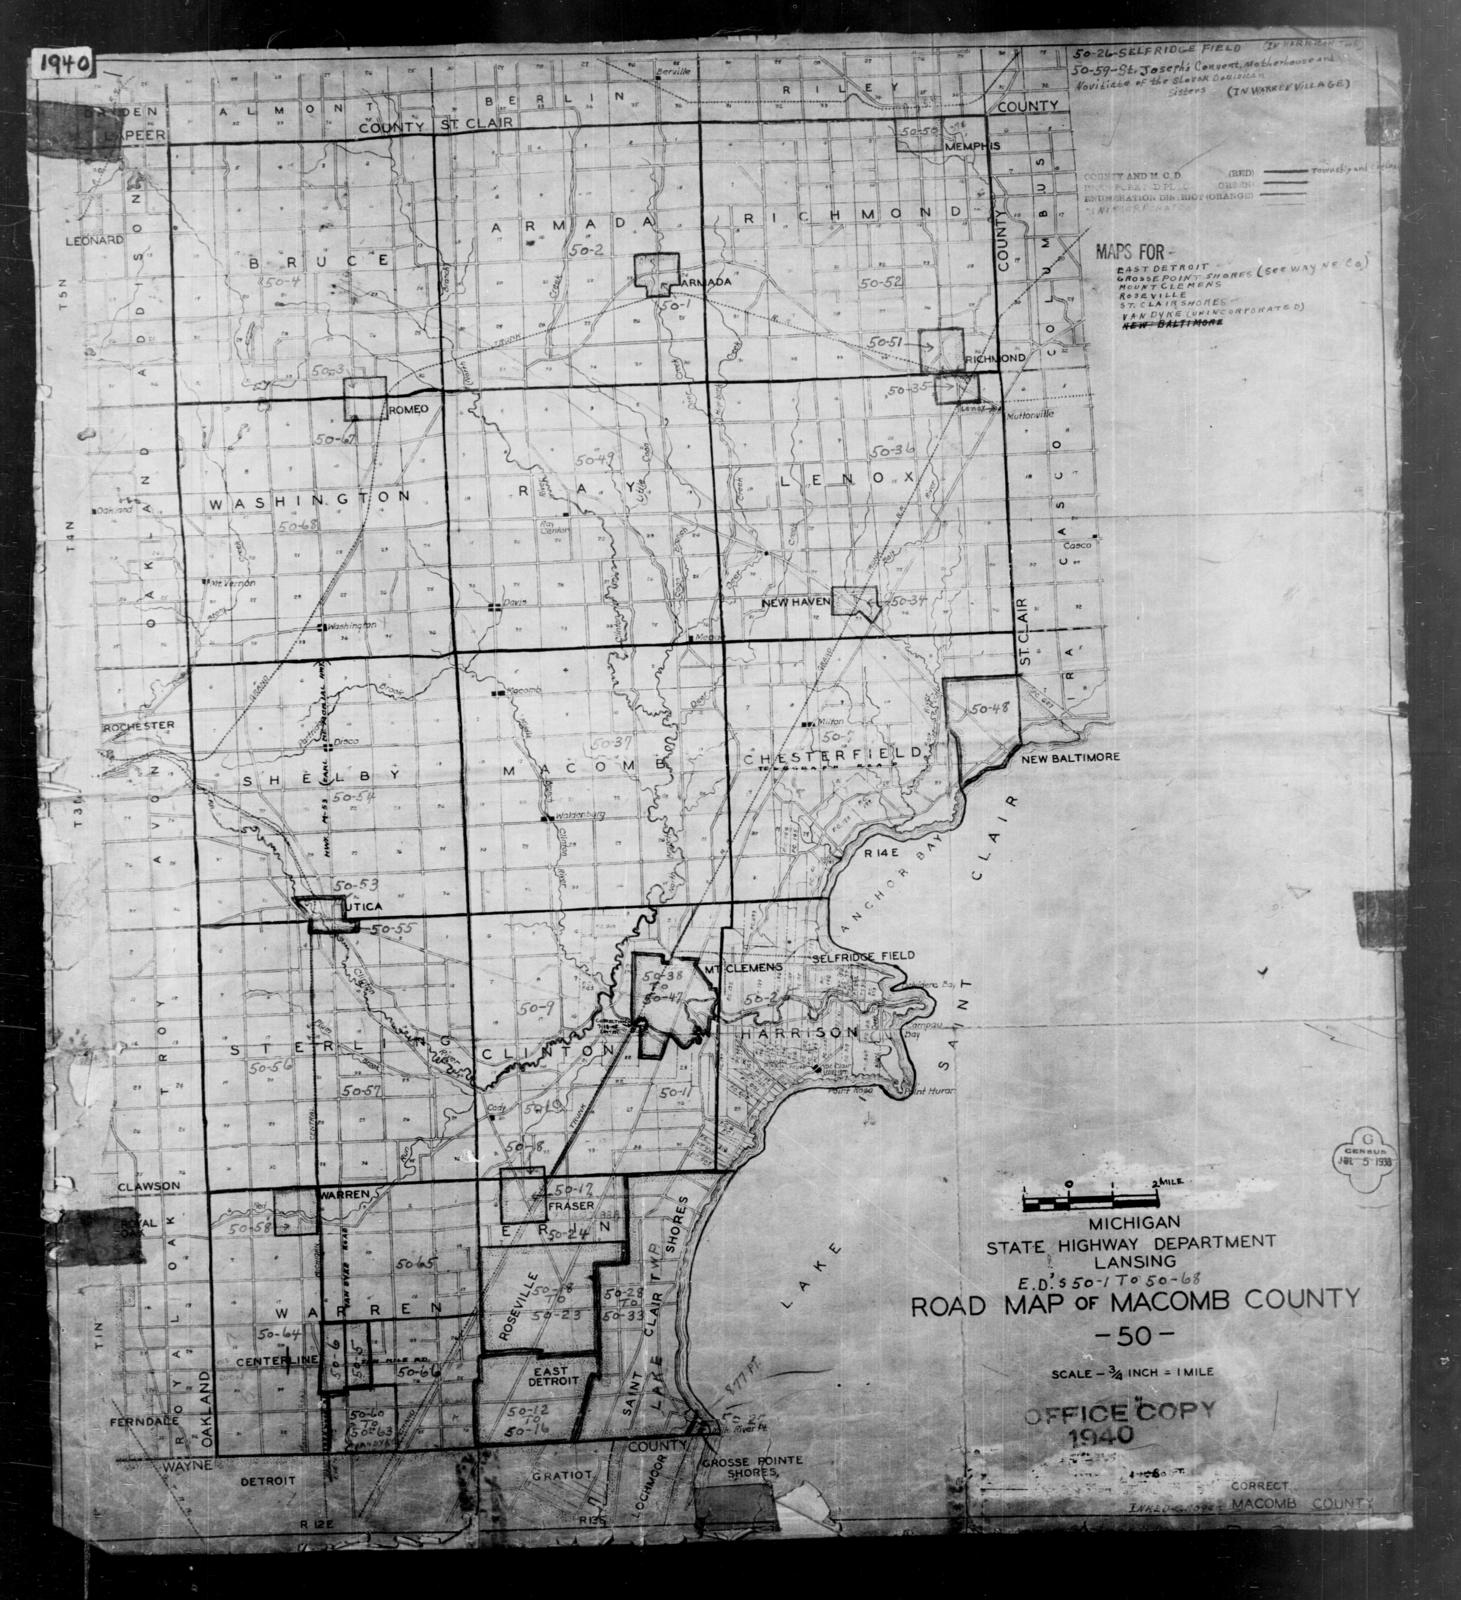 1940 Census Enumeration District Maps - Michigan - Macomb ... on wiu campus map, florida southern college campus map, oakland university mi campus map, western illinois campus map, henry ford community college campus map, mott community college campus map, south davis recreation center map, wayne state university campus map, macomb community college degree, nova cc medical campus map,